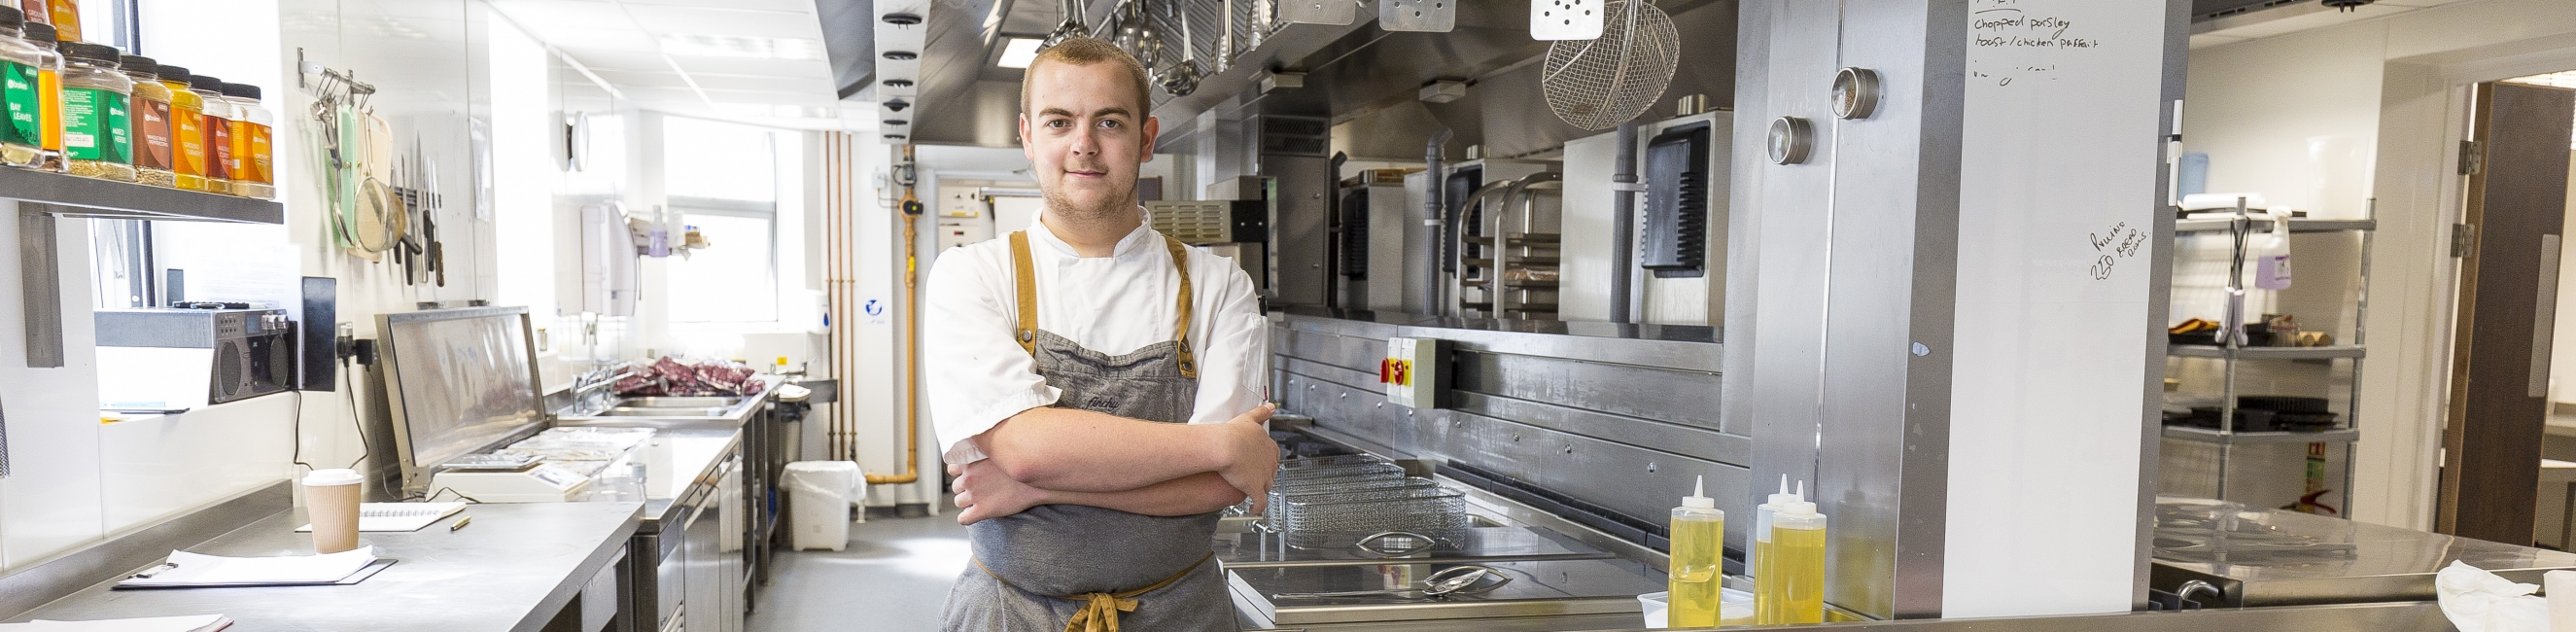 Weston College Student, Further Education 16-18, kitchen, chef